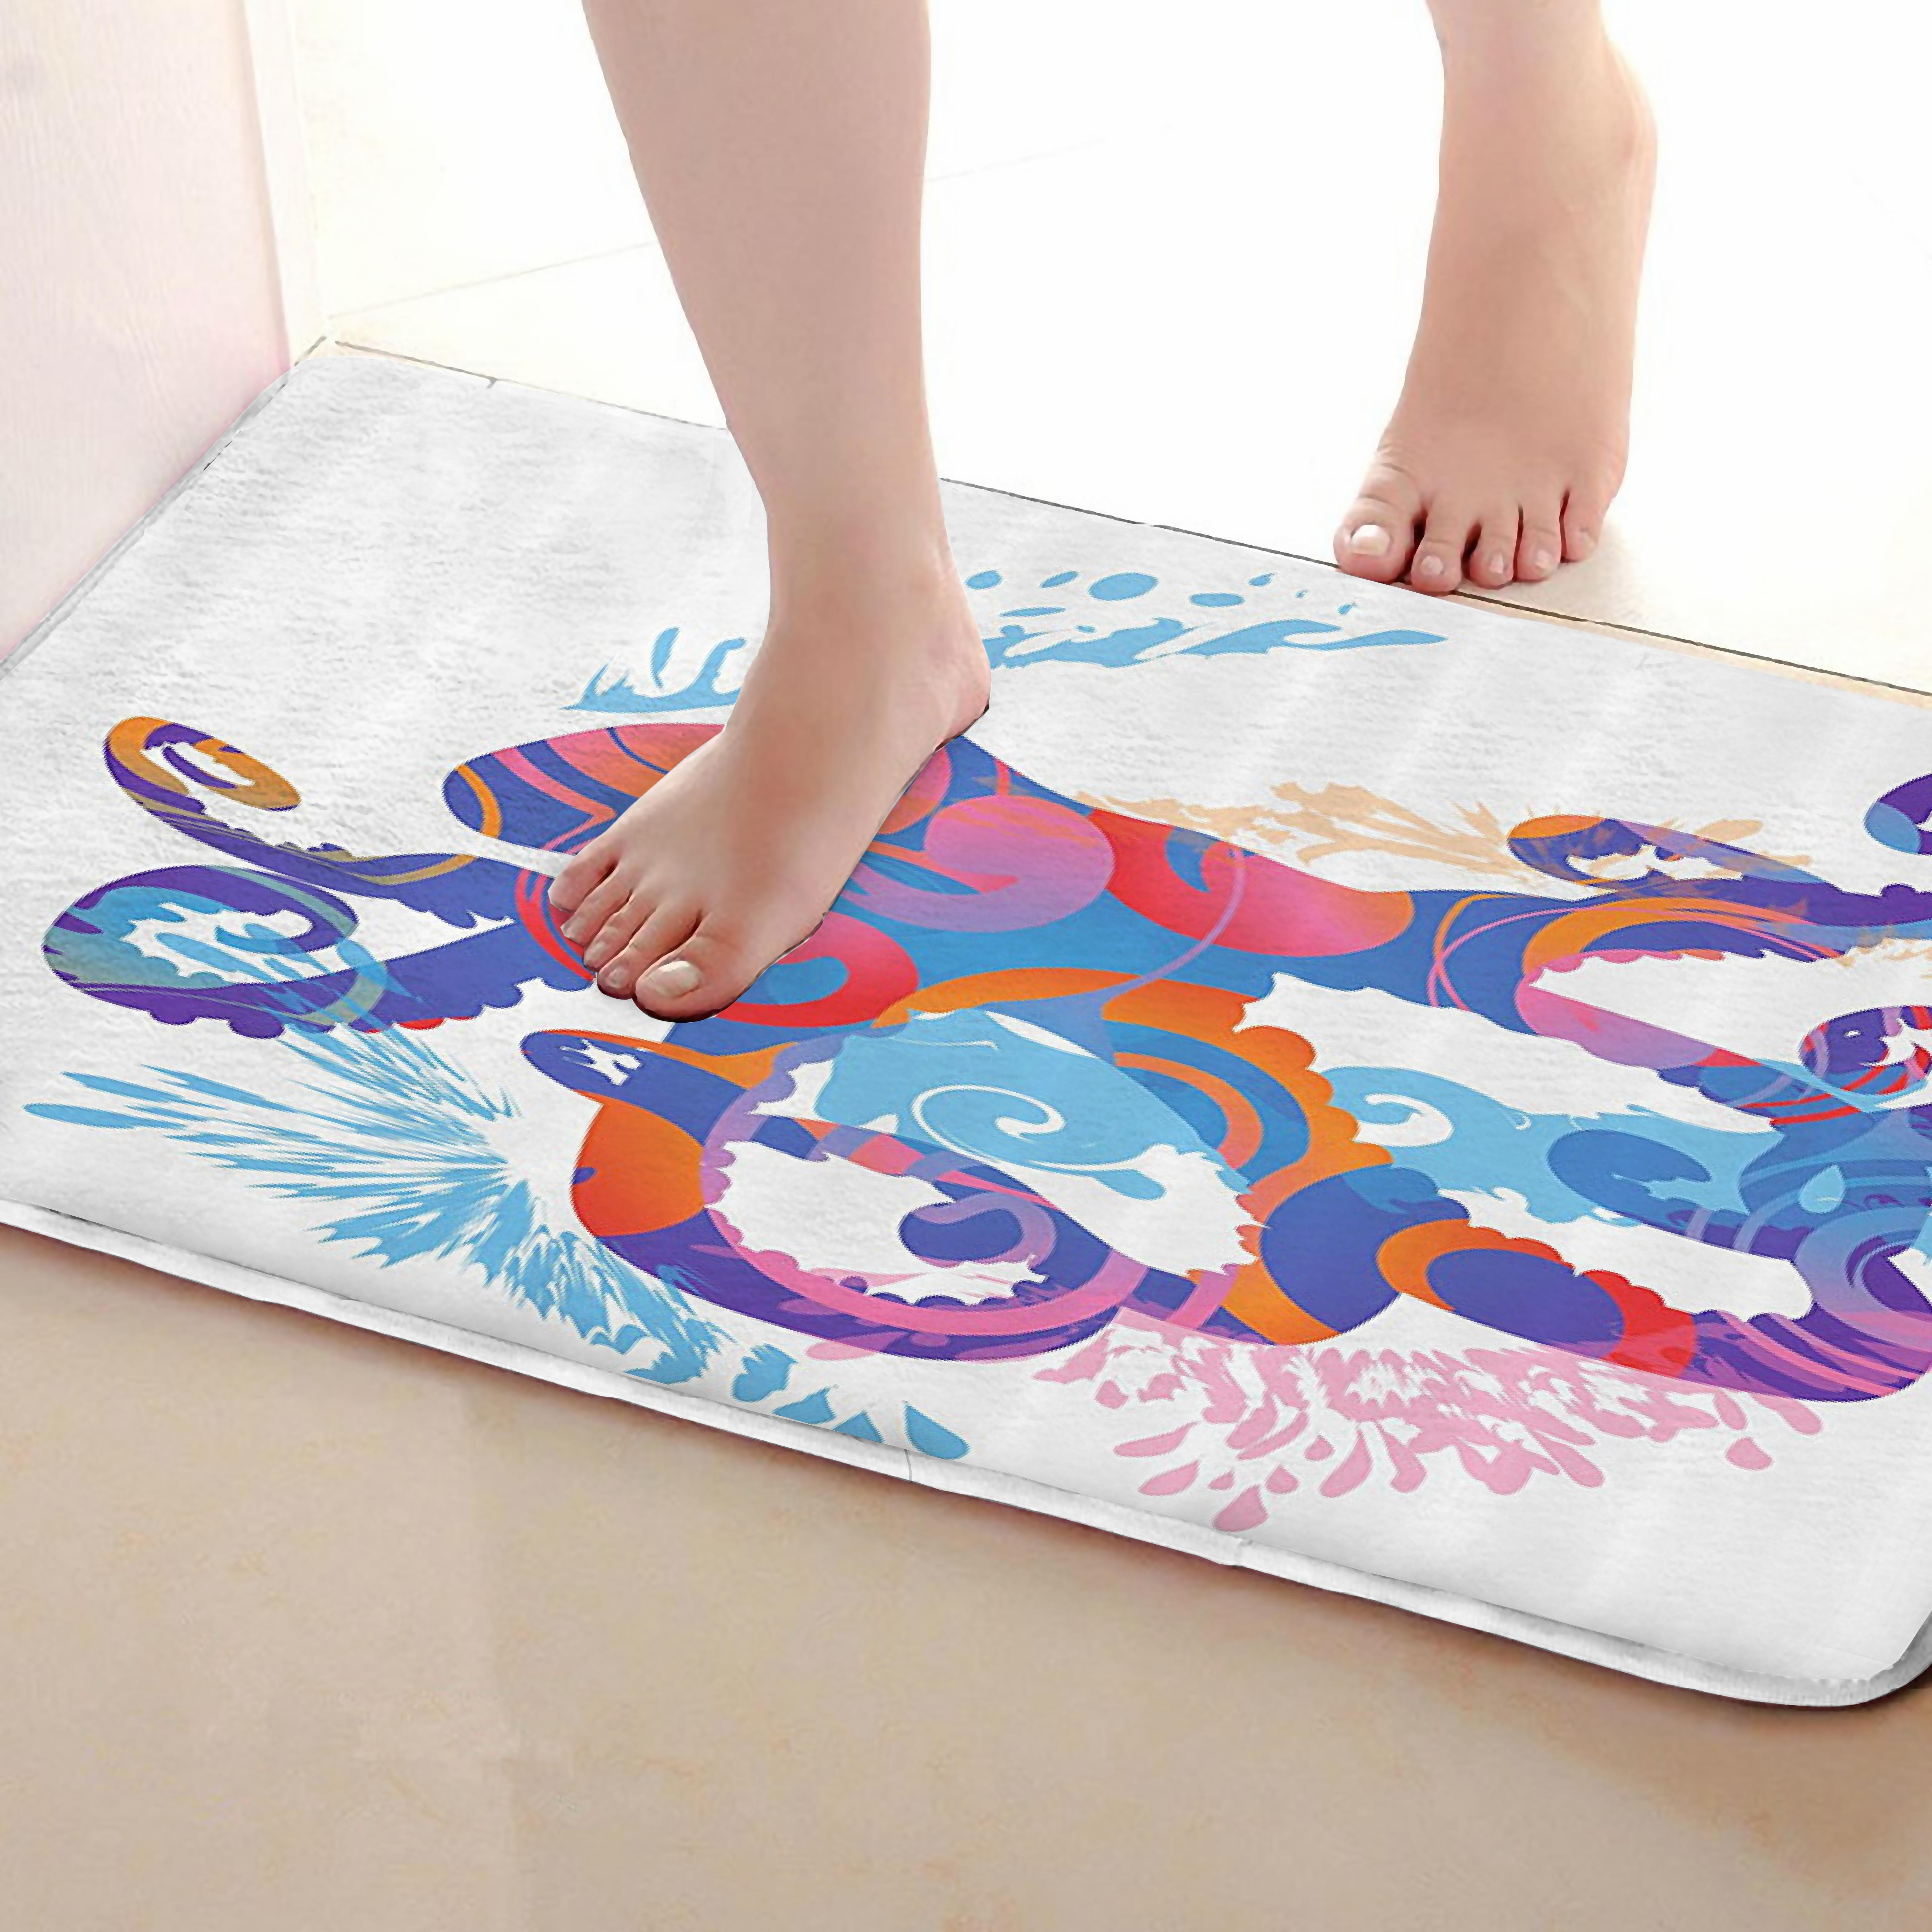 Octopus Style Bathroom Mat,Funny Anti Skid Bath Mat,Shower Curtains Accessories,Matching Your Shower Curtain